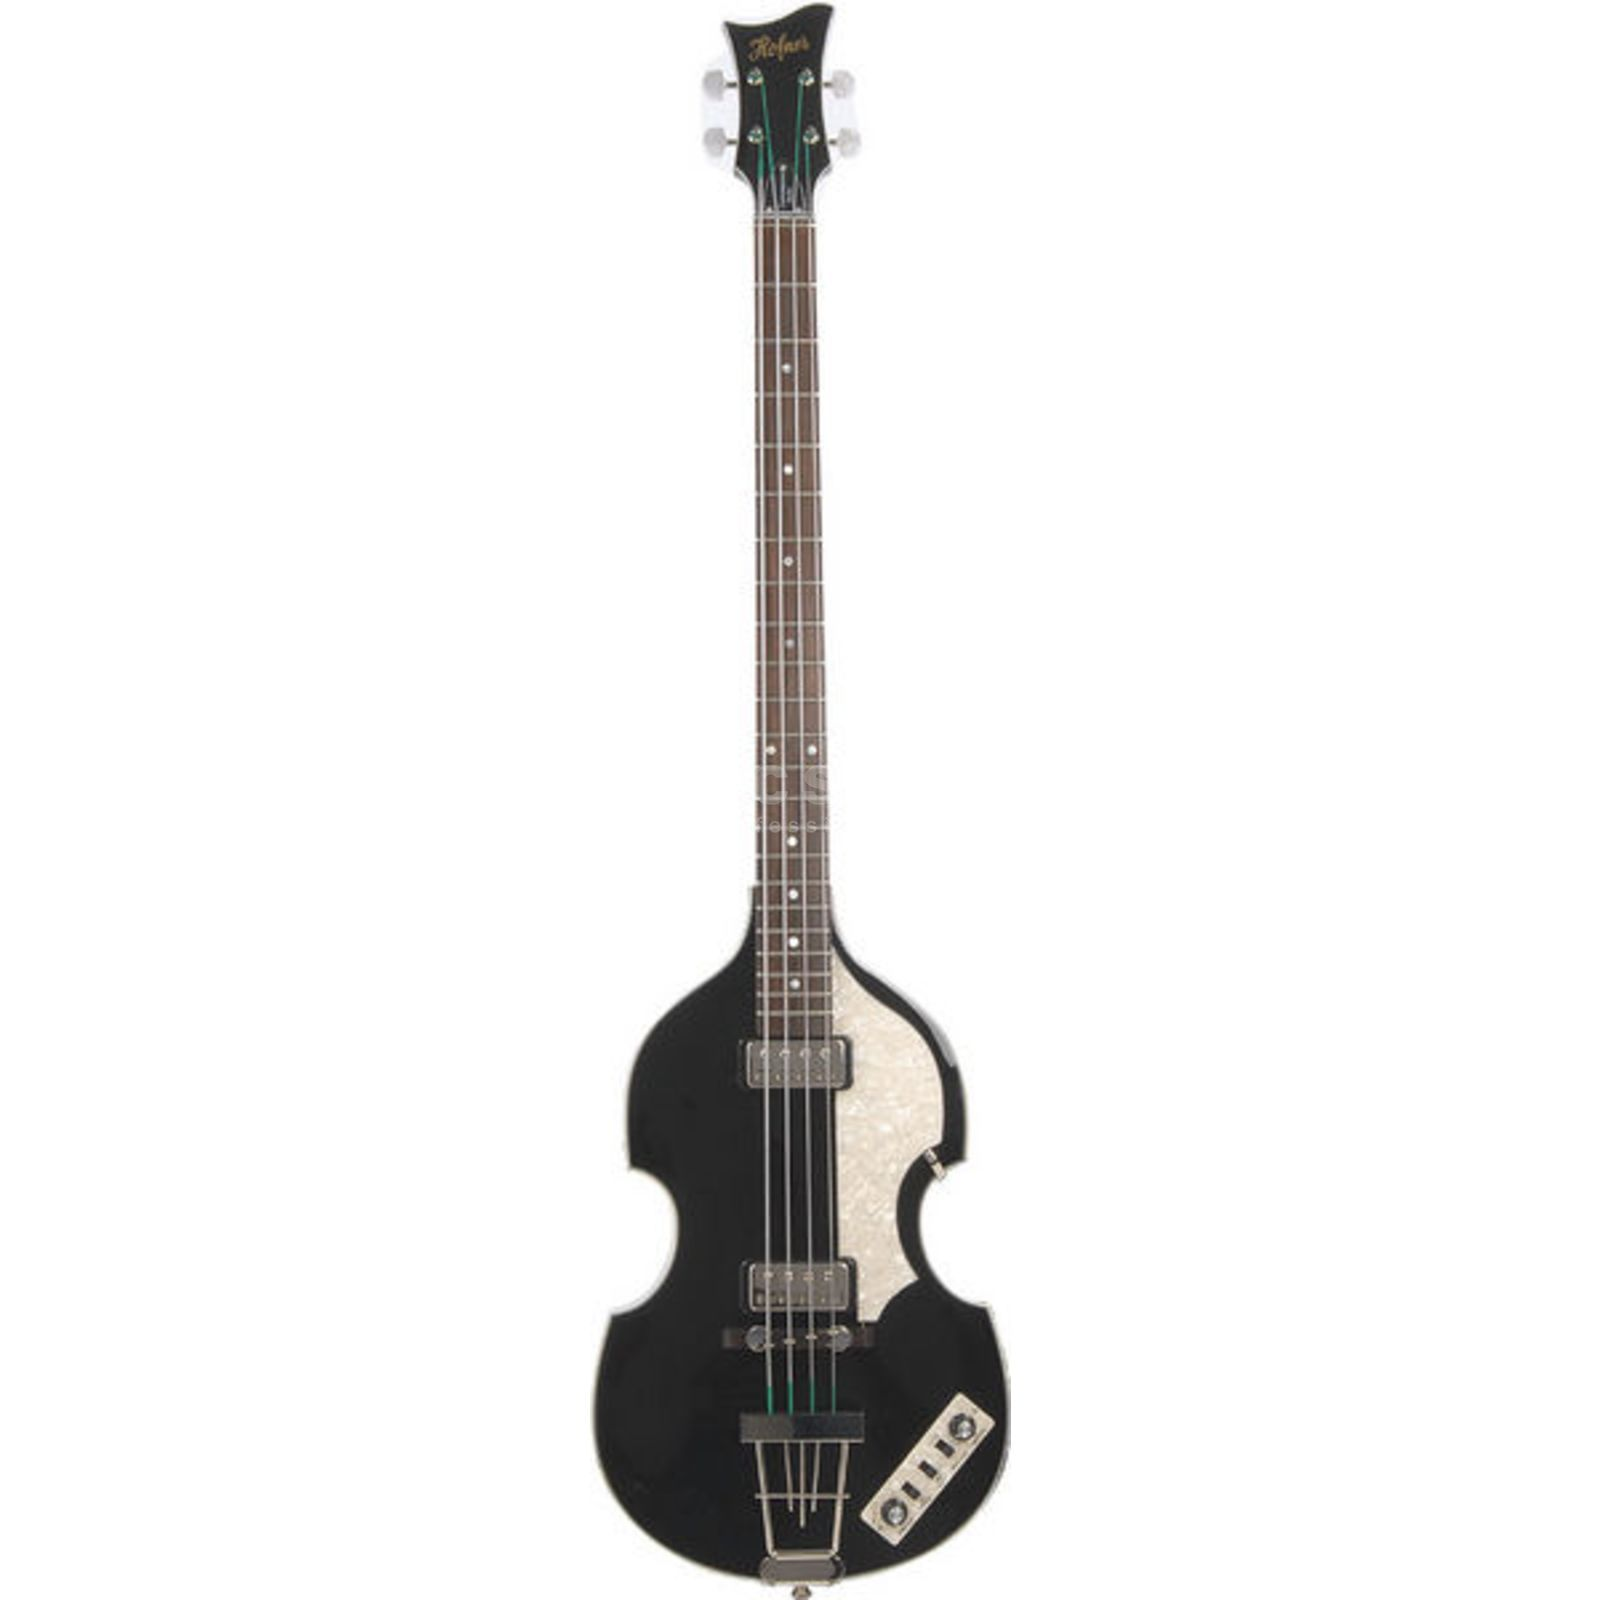 Höfner Contemporary Violin Bass Black HCT-500/1-BK B-Stock Imagem do produto